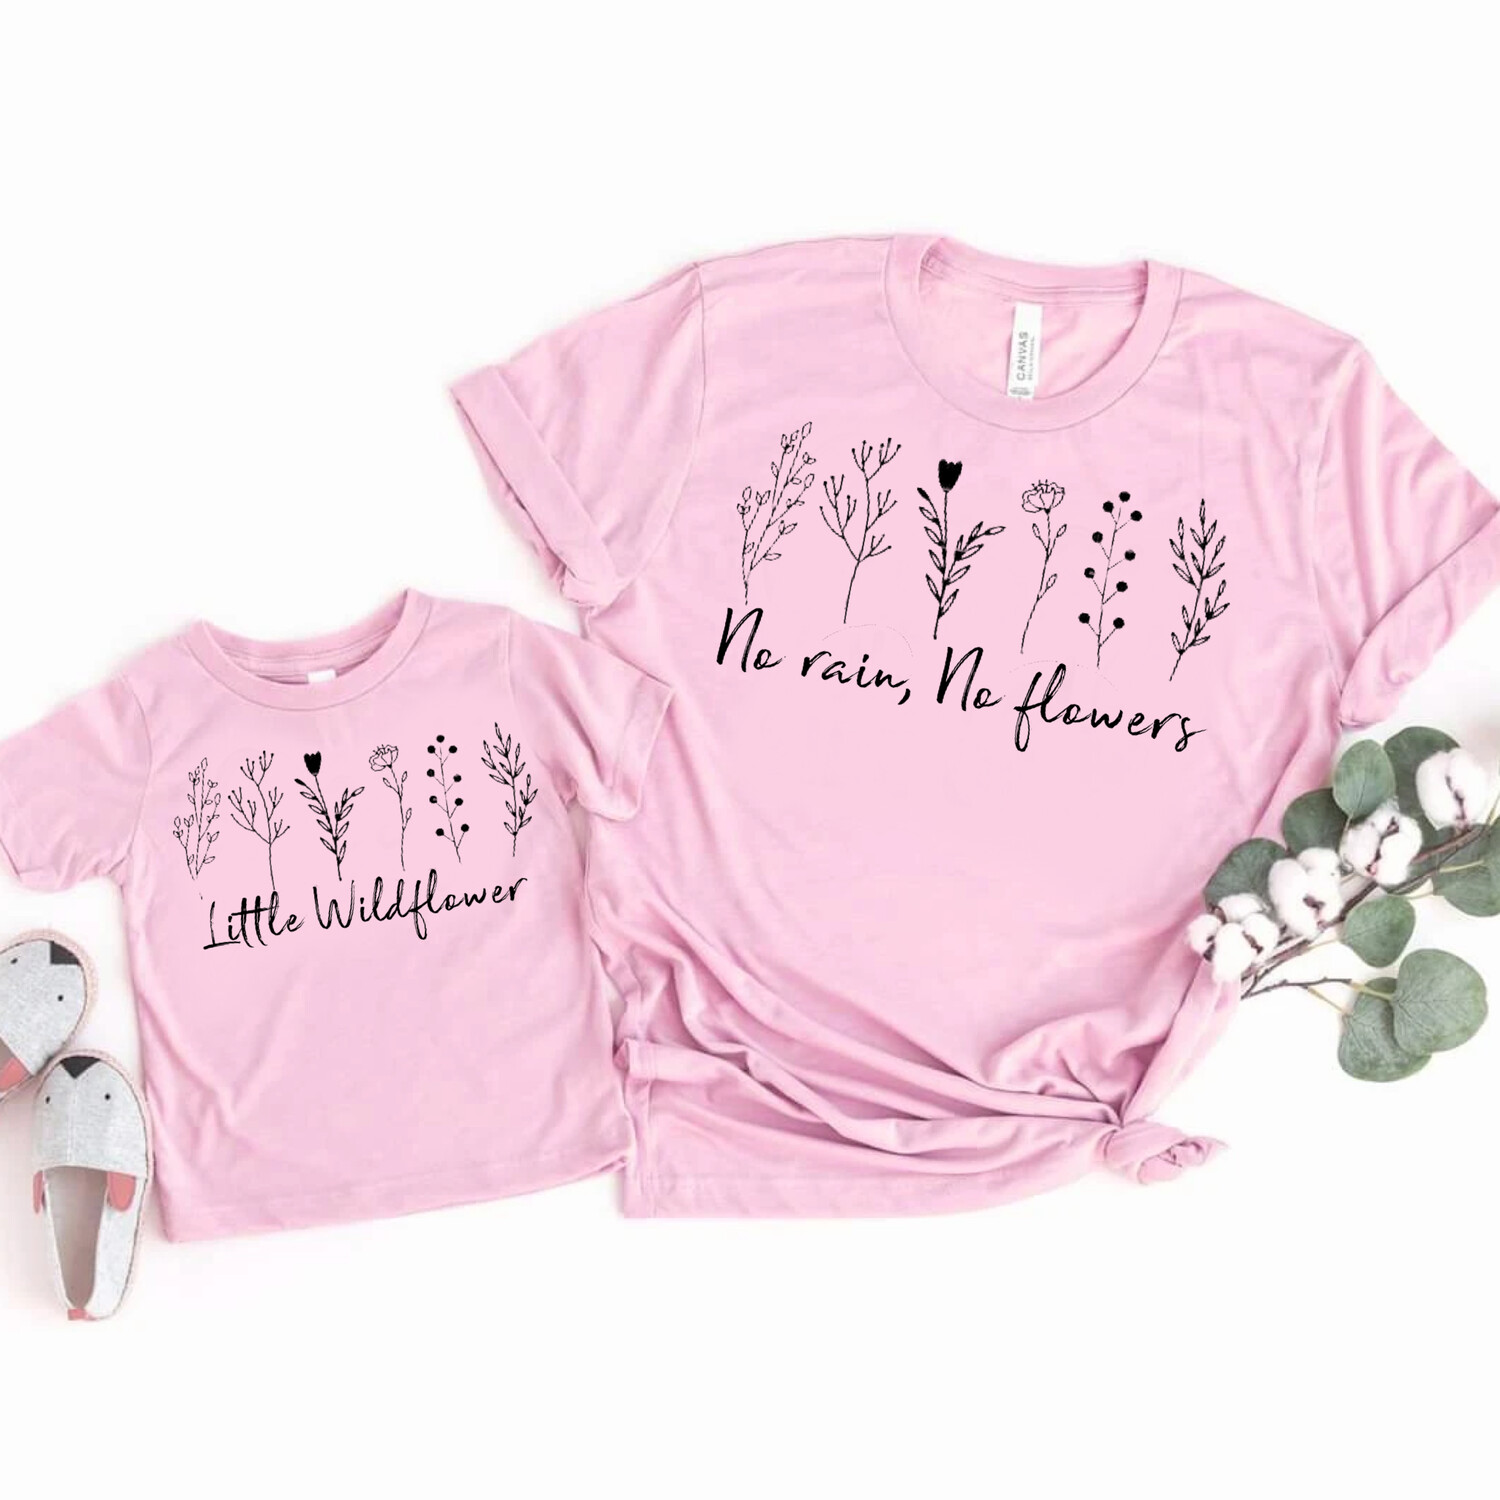 Flowers And Wildflower T-shirt matching set